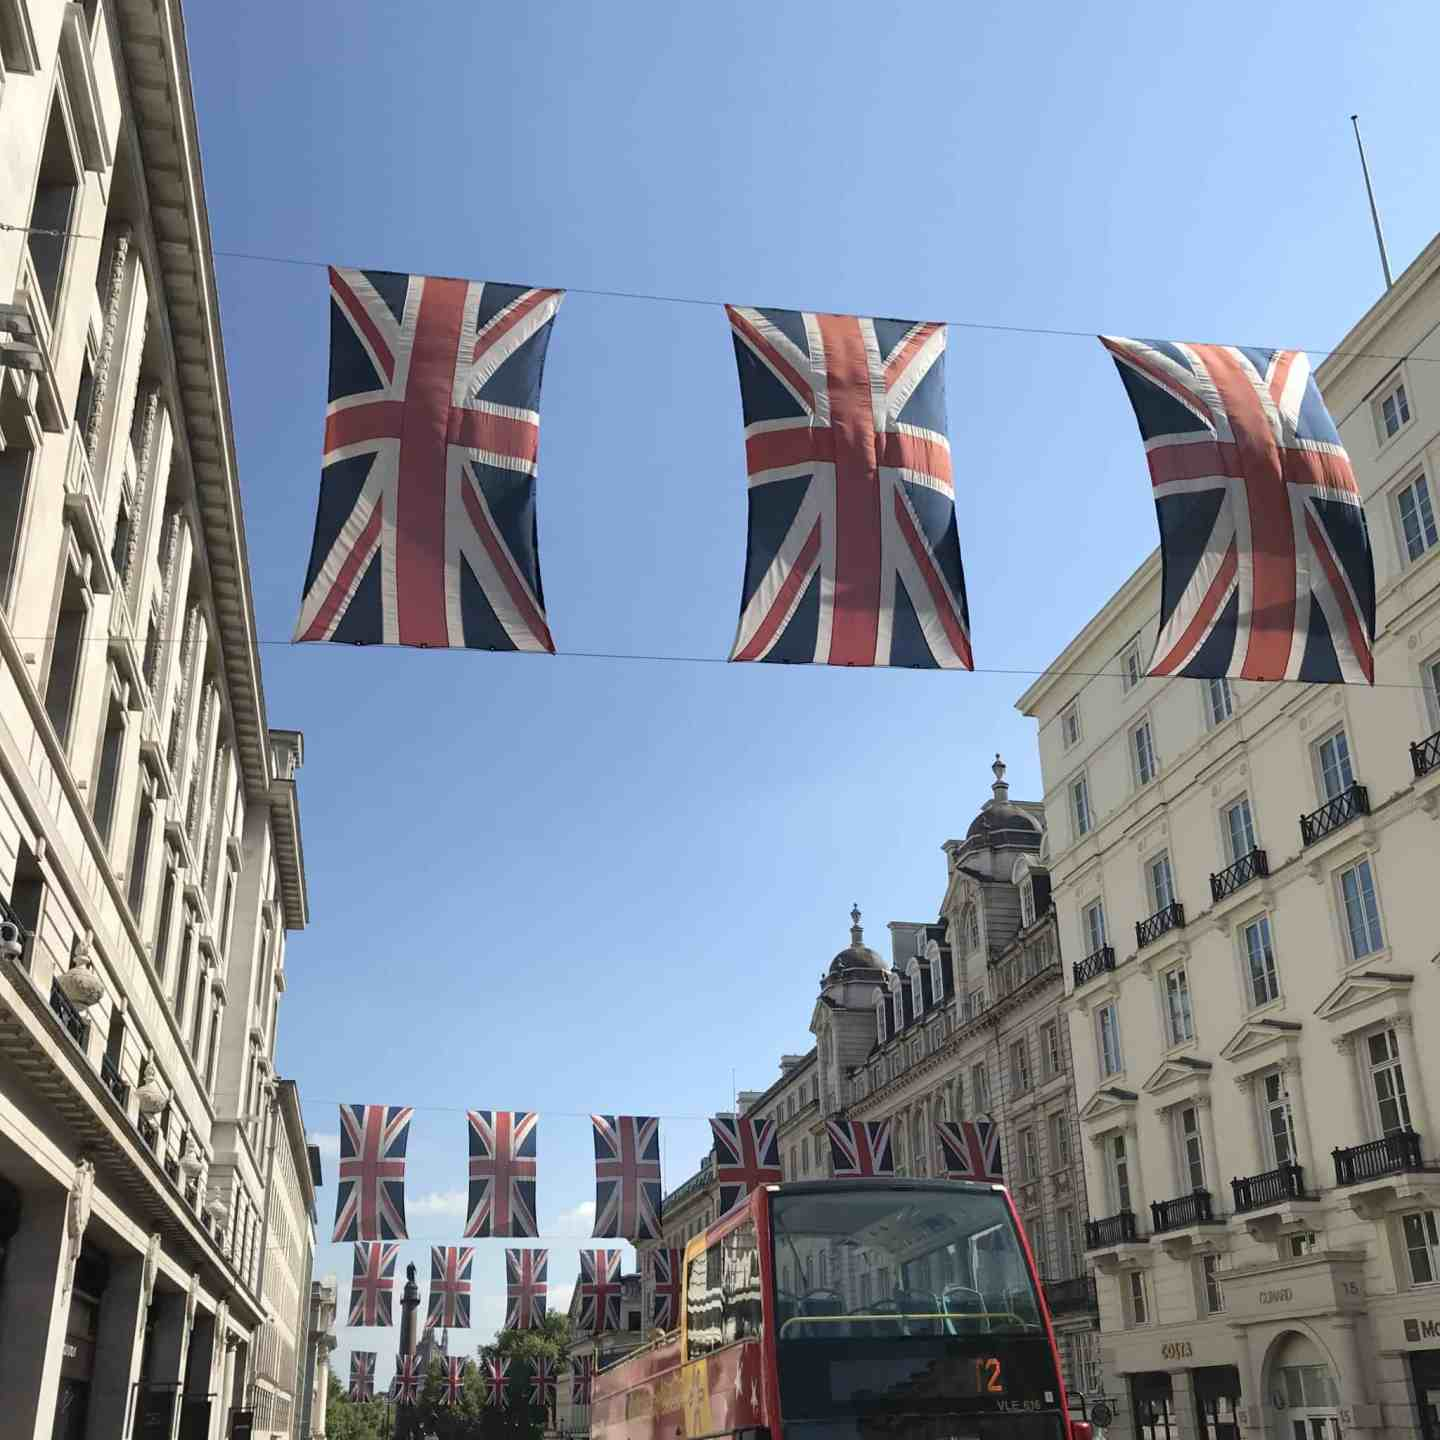 London street with Union Jack flags